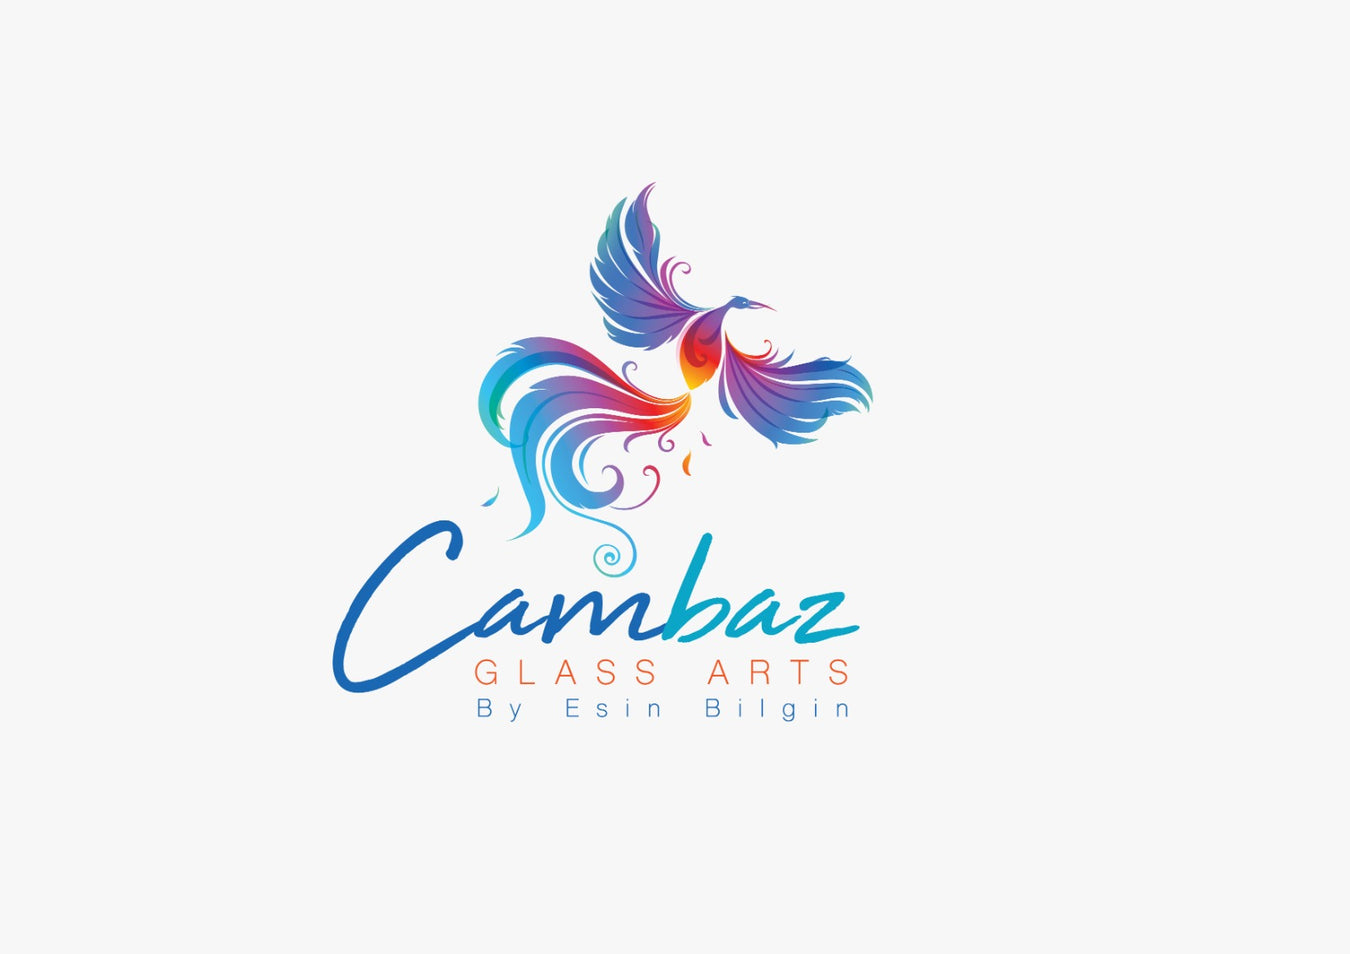 CAMBAZ GLASS ARTS